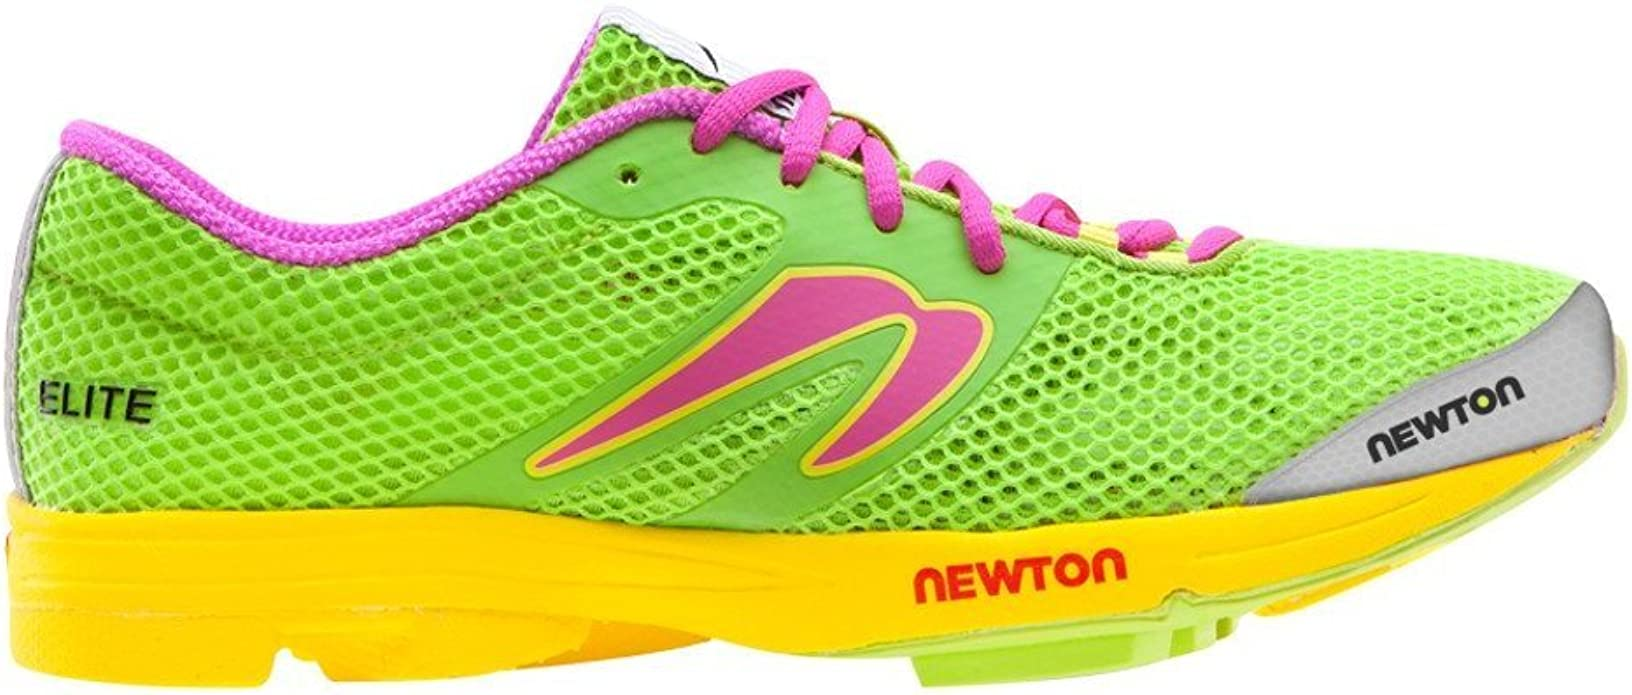 Newton Running - Elite Mujer, Verde (Lima/Rosa (Lime/Pink)), 7 B(M) US: Amazon.es: Zapatos y complementos